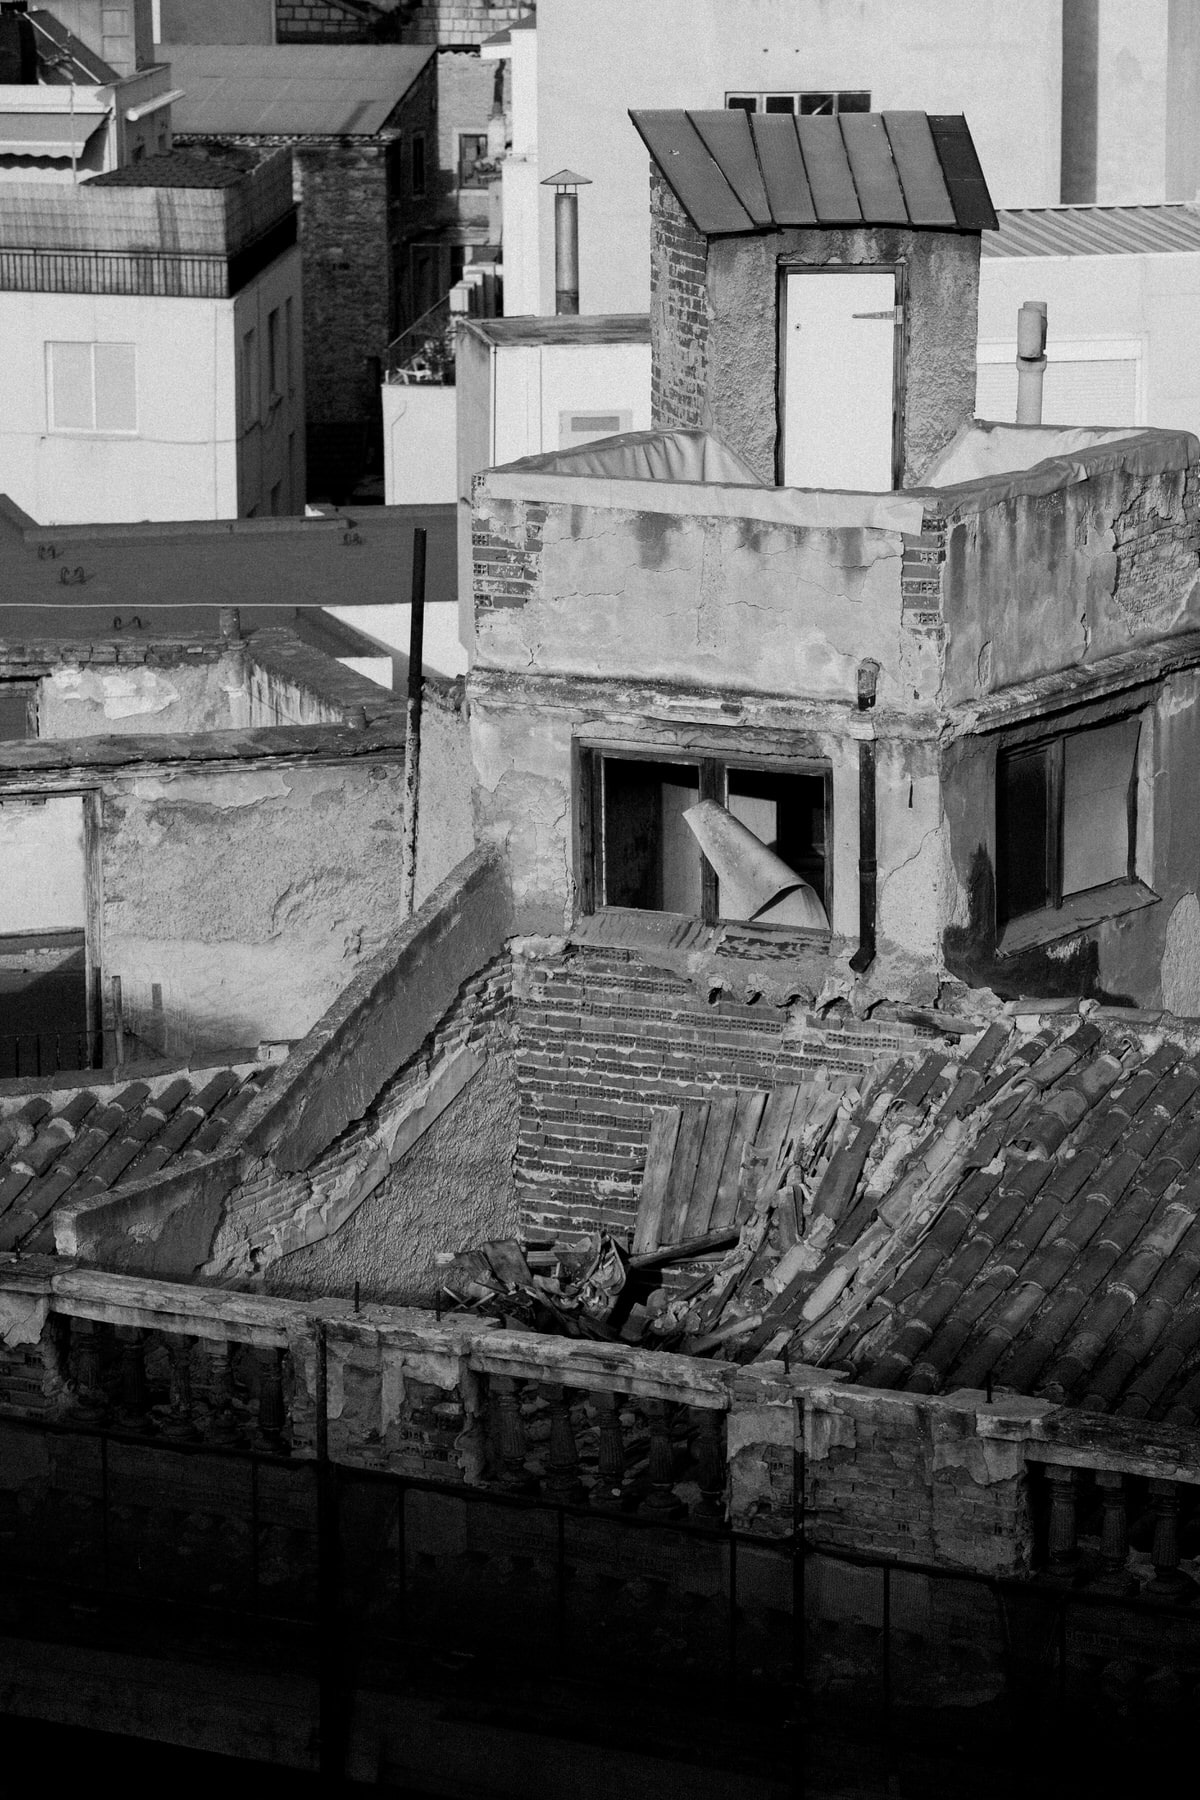 Athens-Greece-black-and-white-fine-art-photography-by-Studio-L-photographer-Laura-Schneider-_2152